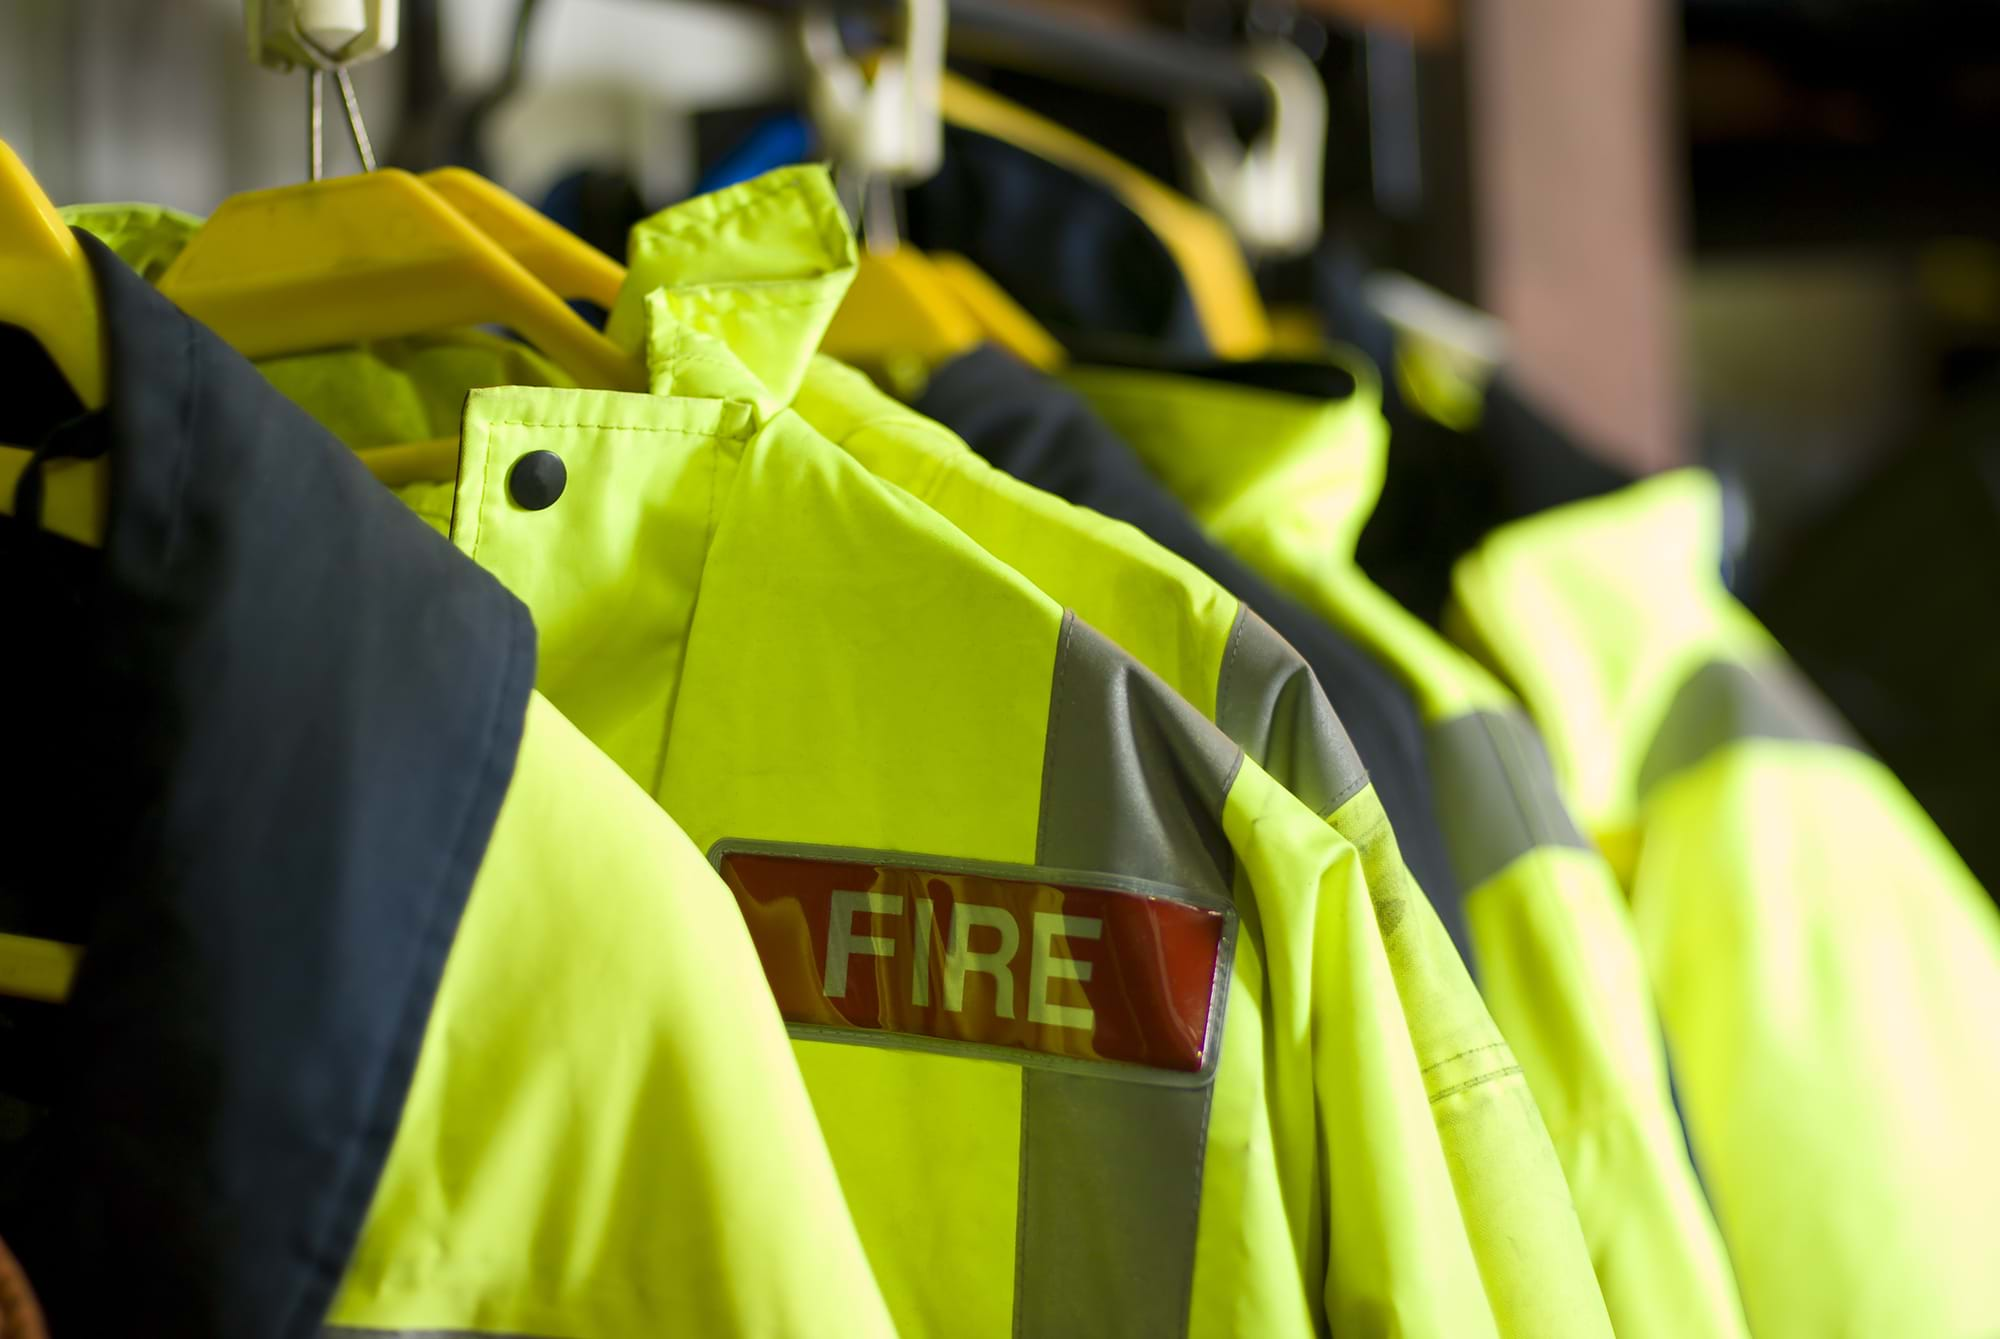 A row of Firefighter uniforms hanging from coathangers